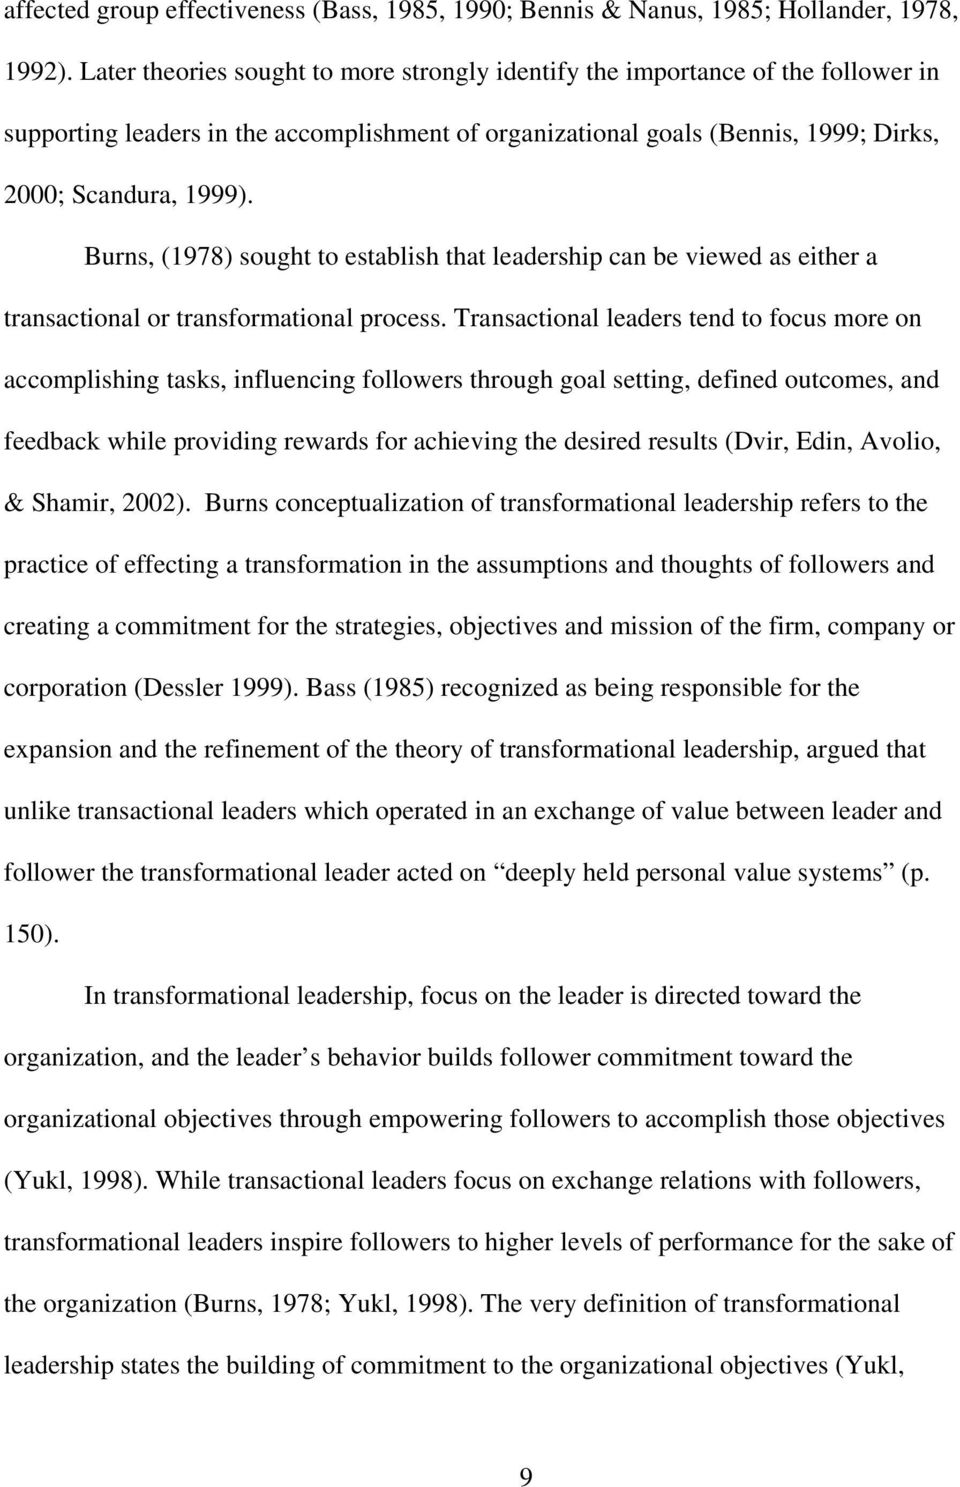 Burns, (1978) sought to establish that leadership can be viewed as either a transactional or transformational process.